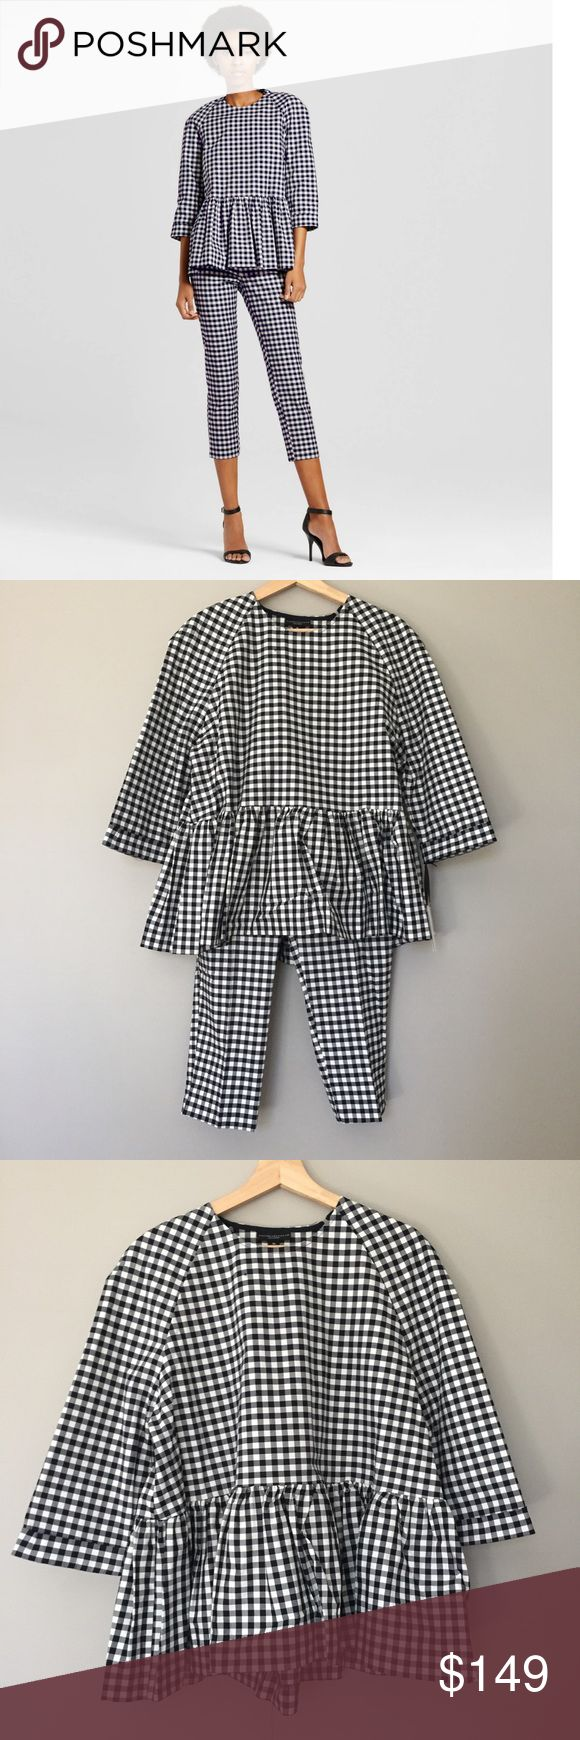 Victoria Beckham Target gingham peplum pant set SOLD OUT!  Brand new with tags. Women's Blue and White Gingham Twill Peplum Blouse and crop pants.  Top is XL and pants is 12.  Size 10 pants and other pieces also available. Victoria Beckham Pants Ankle & Cropped